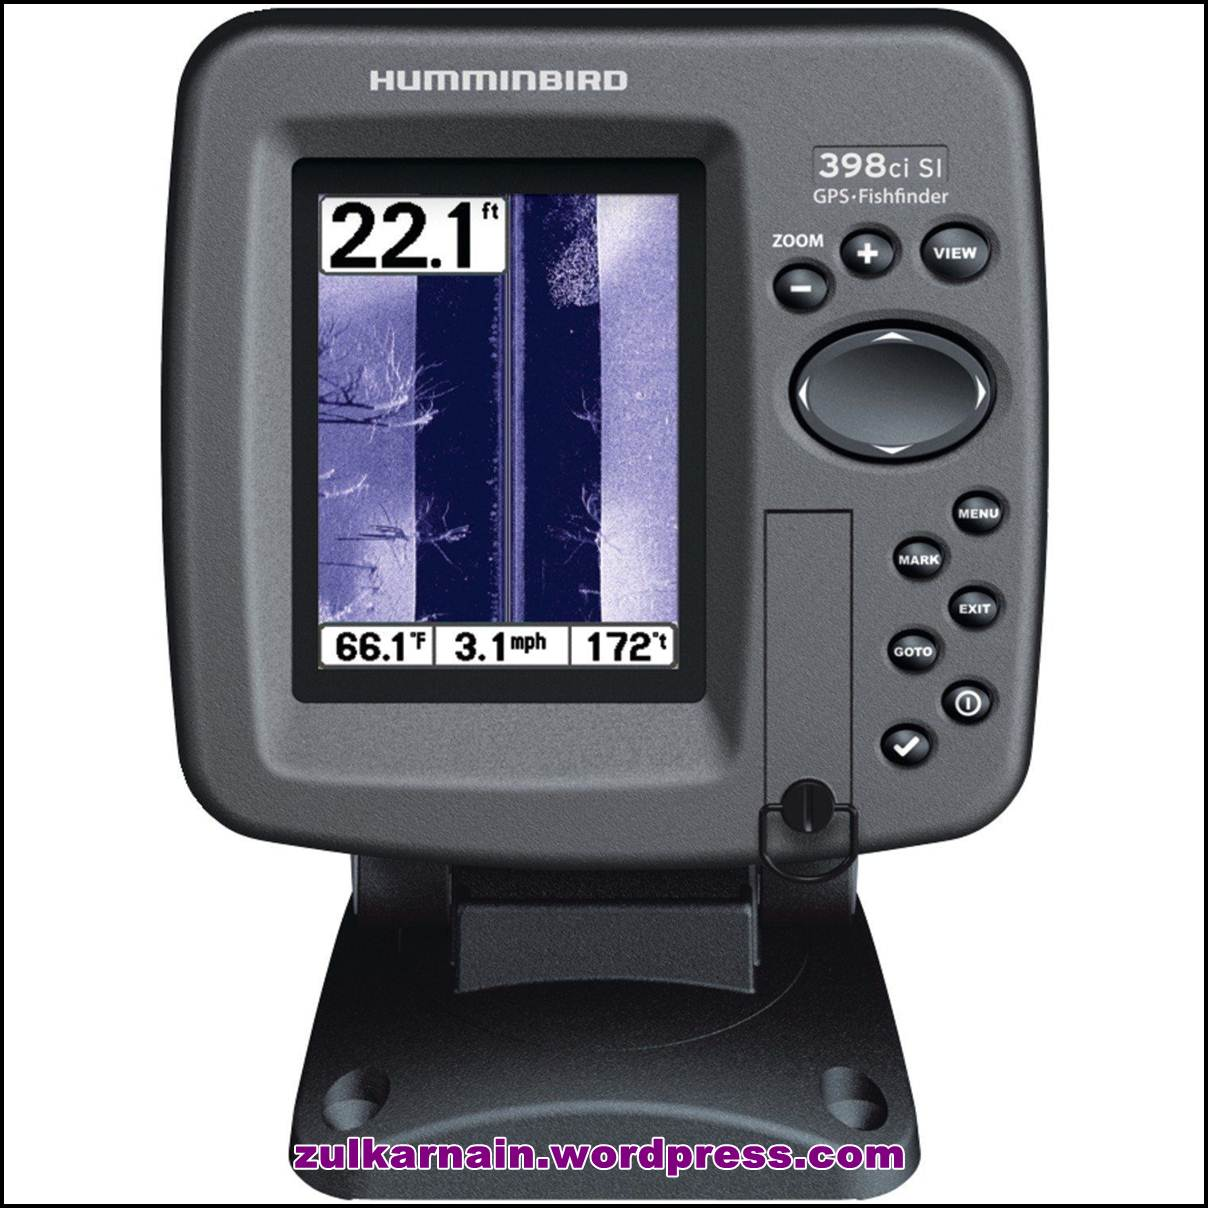 Humminbird 398ci SI Side Imaging